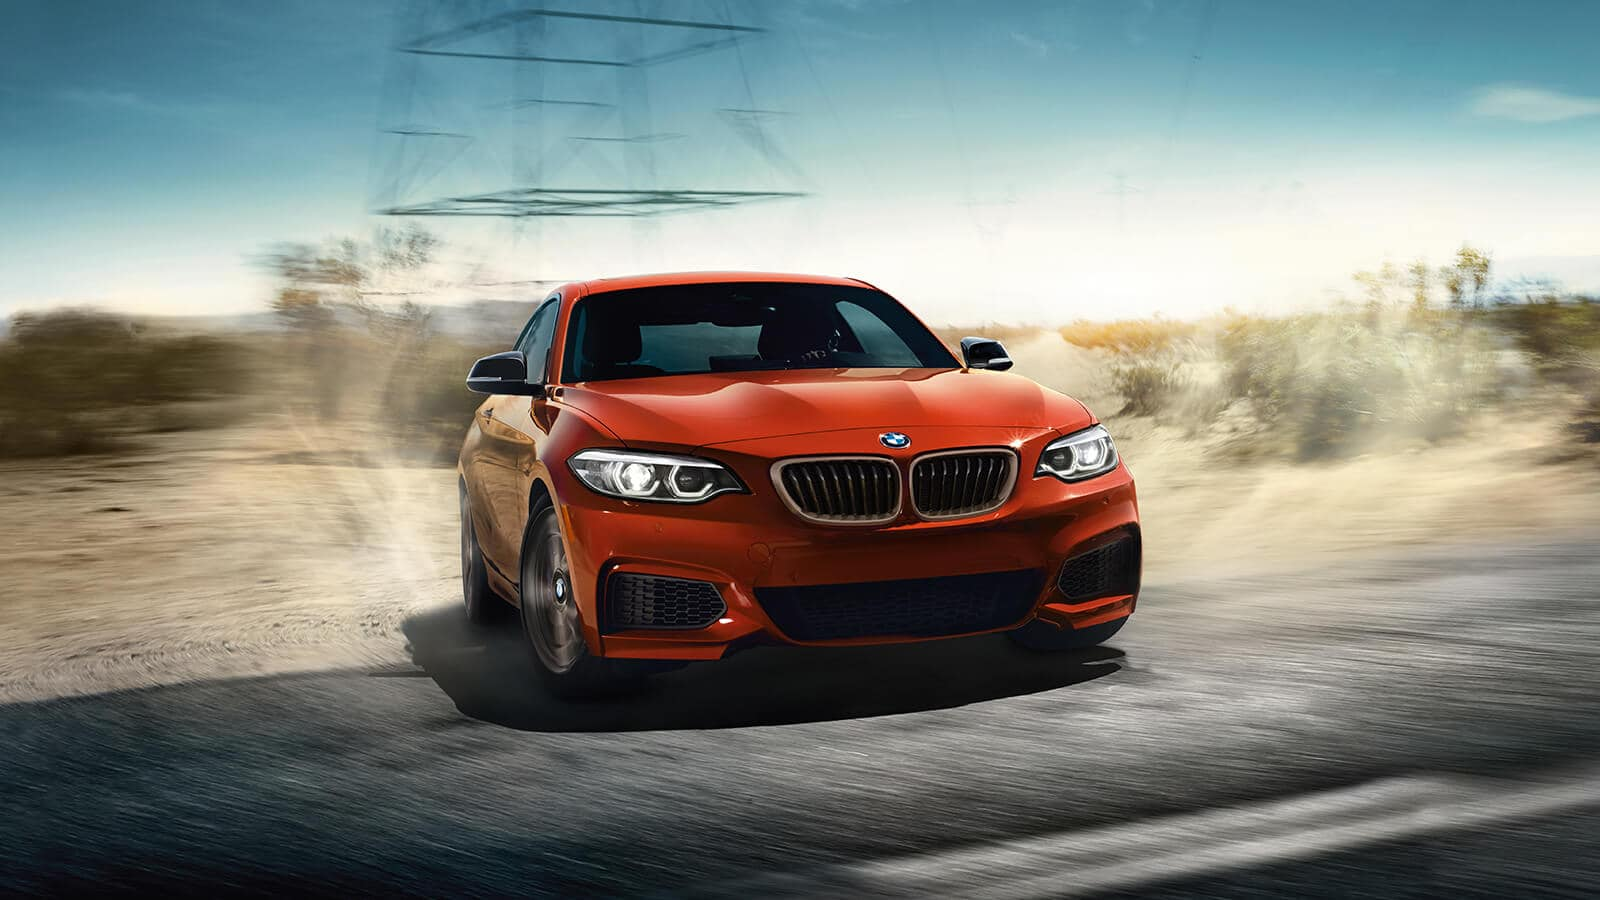 2019 BMW 230i Front Orange Driving Exterior